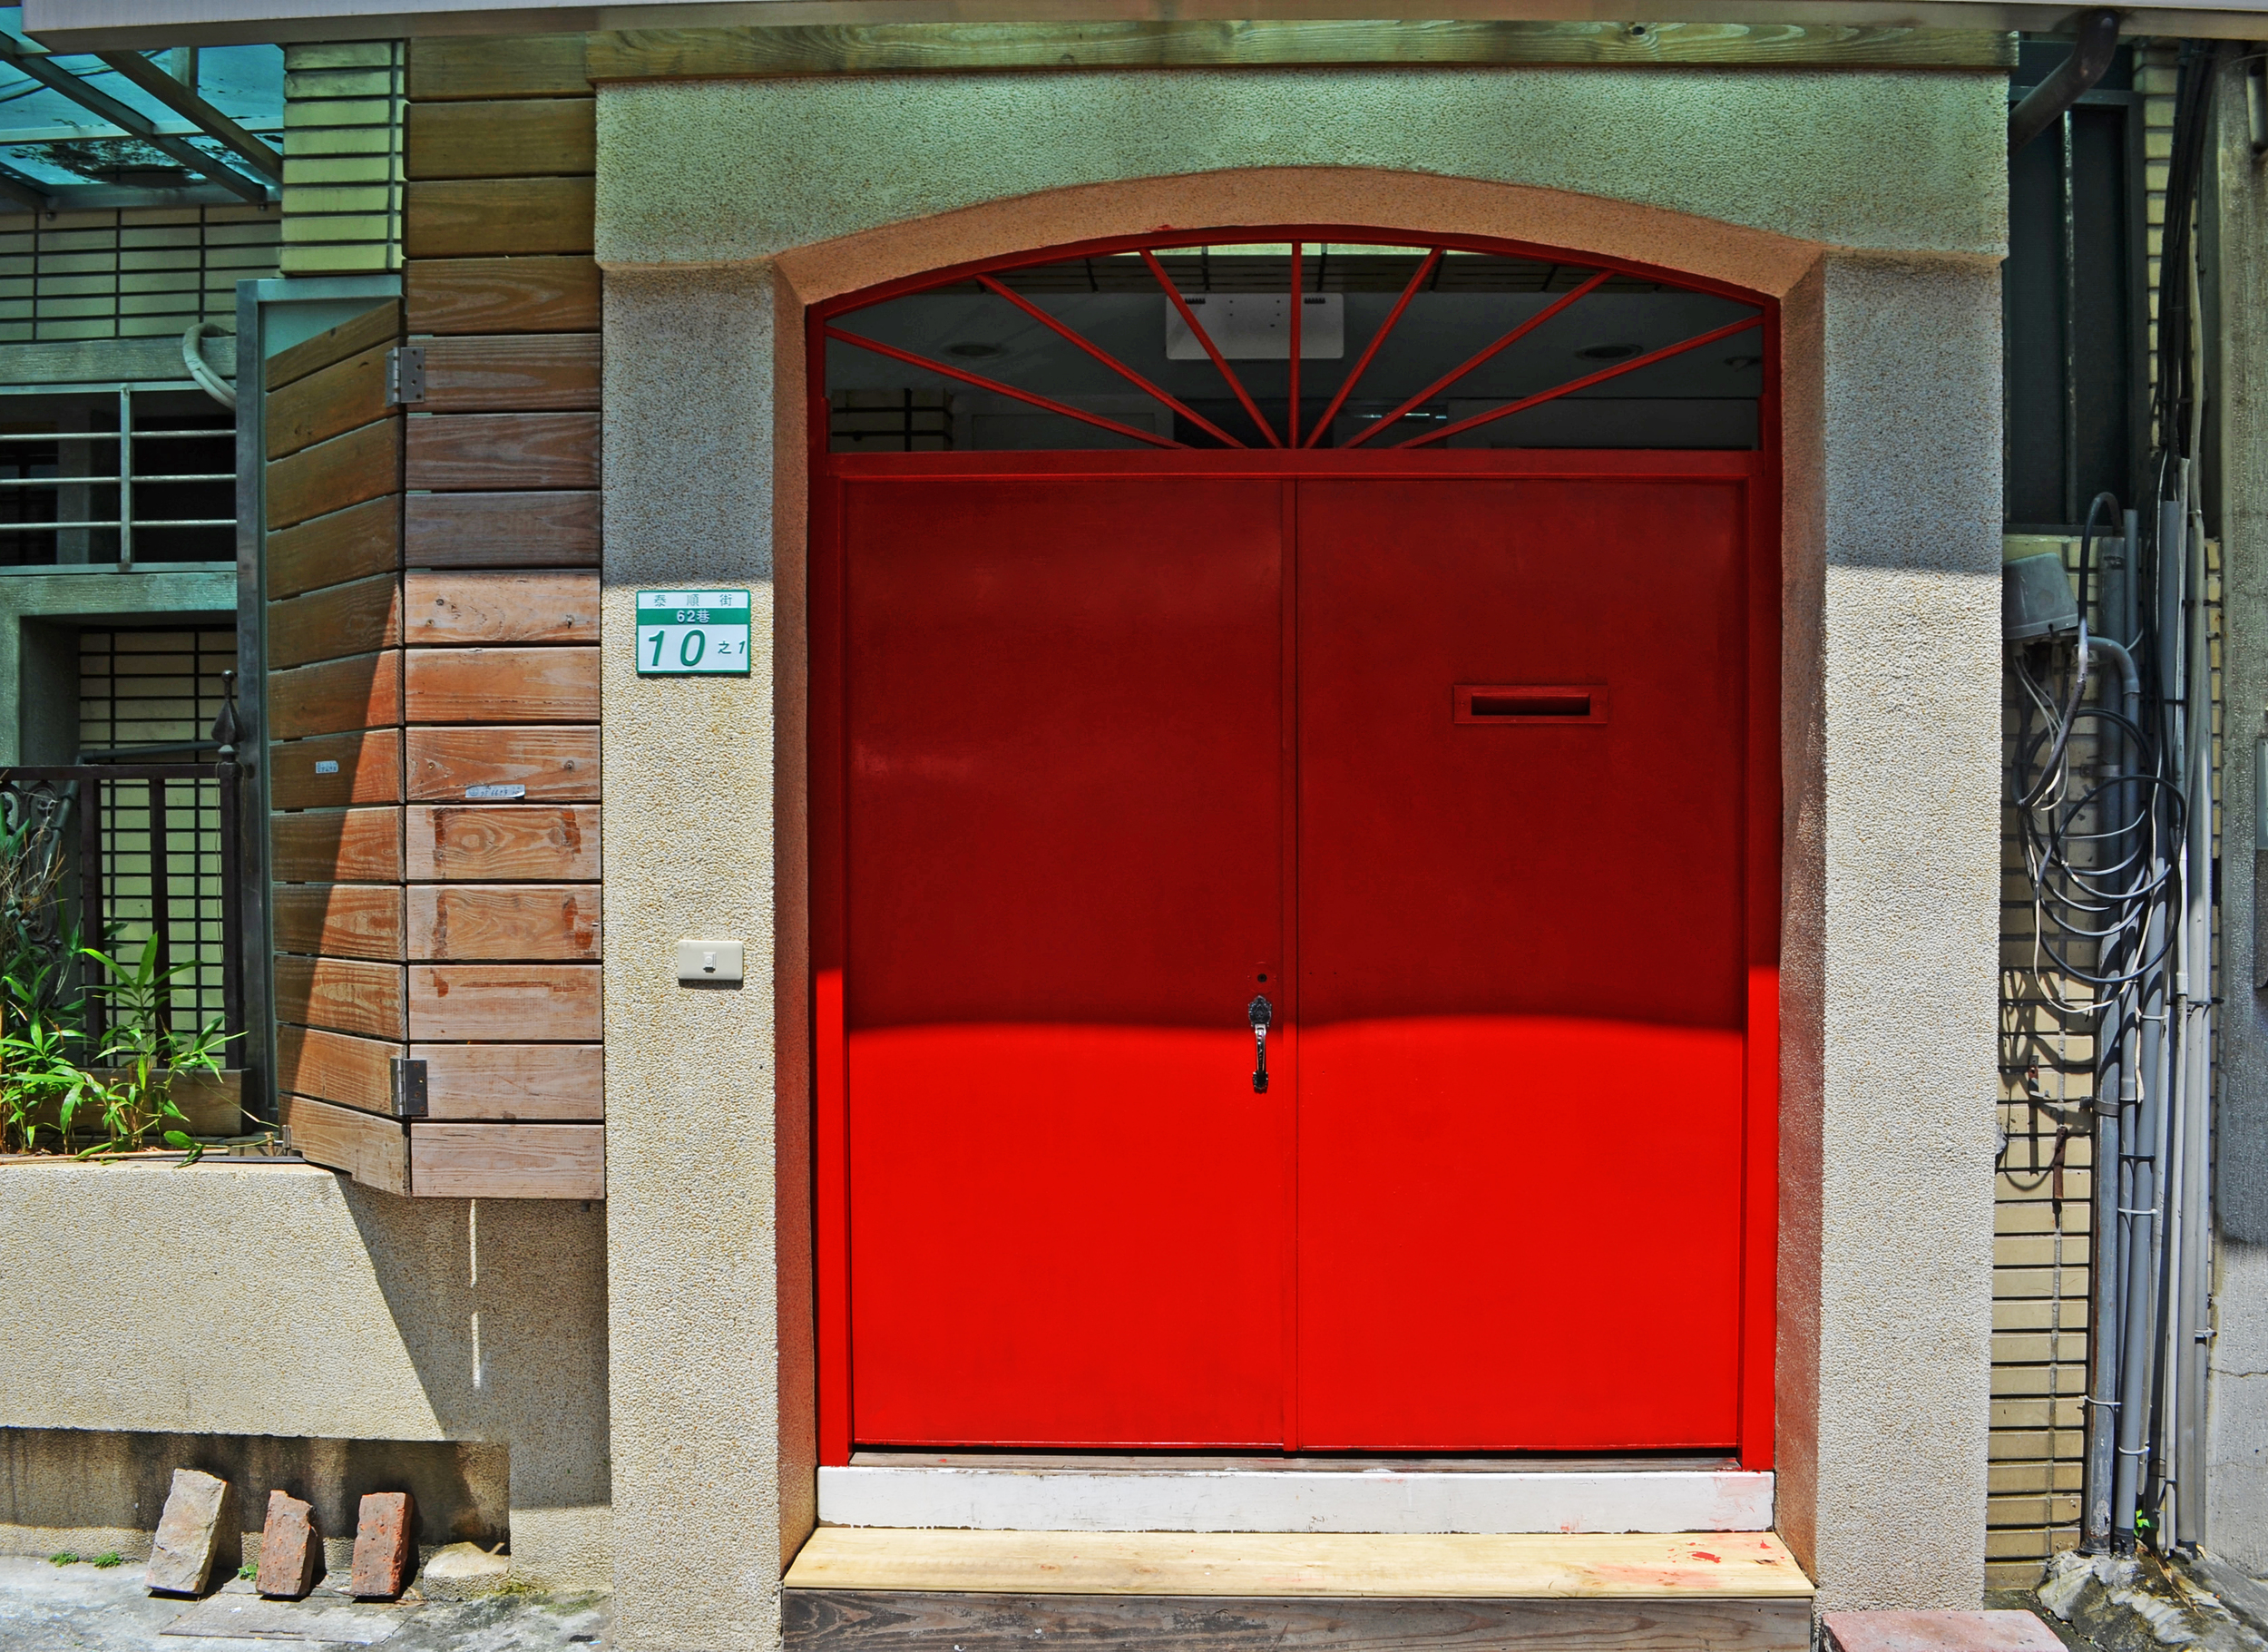 three-little-birds-red-front-door-taipei-taiwan-revonvation-hostel-guesthouse